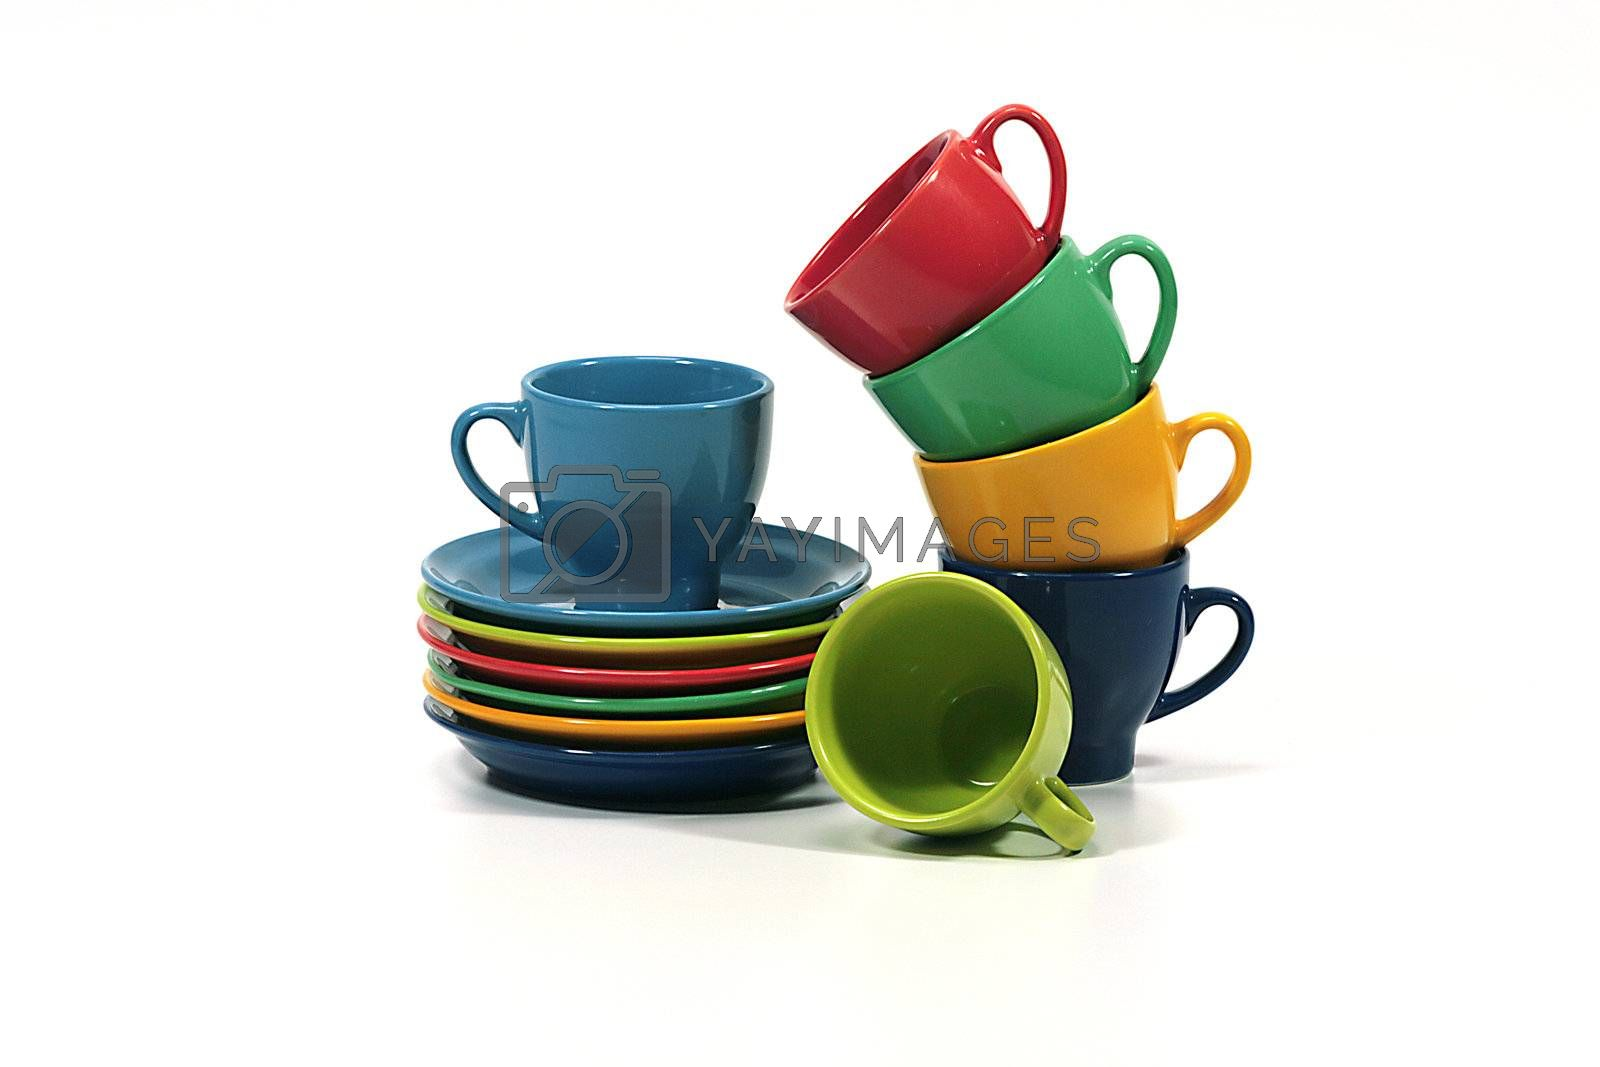 Color tea cups - photos for designers on a white background.